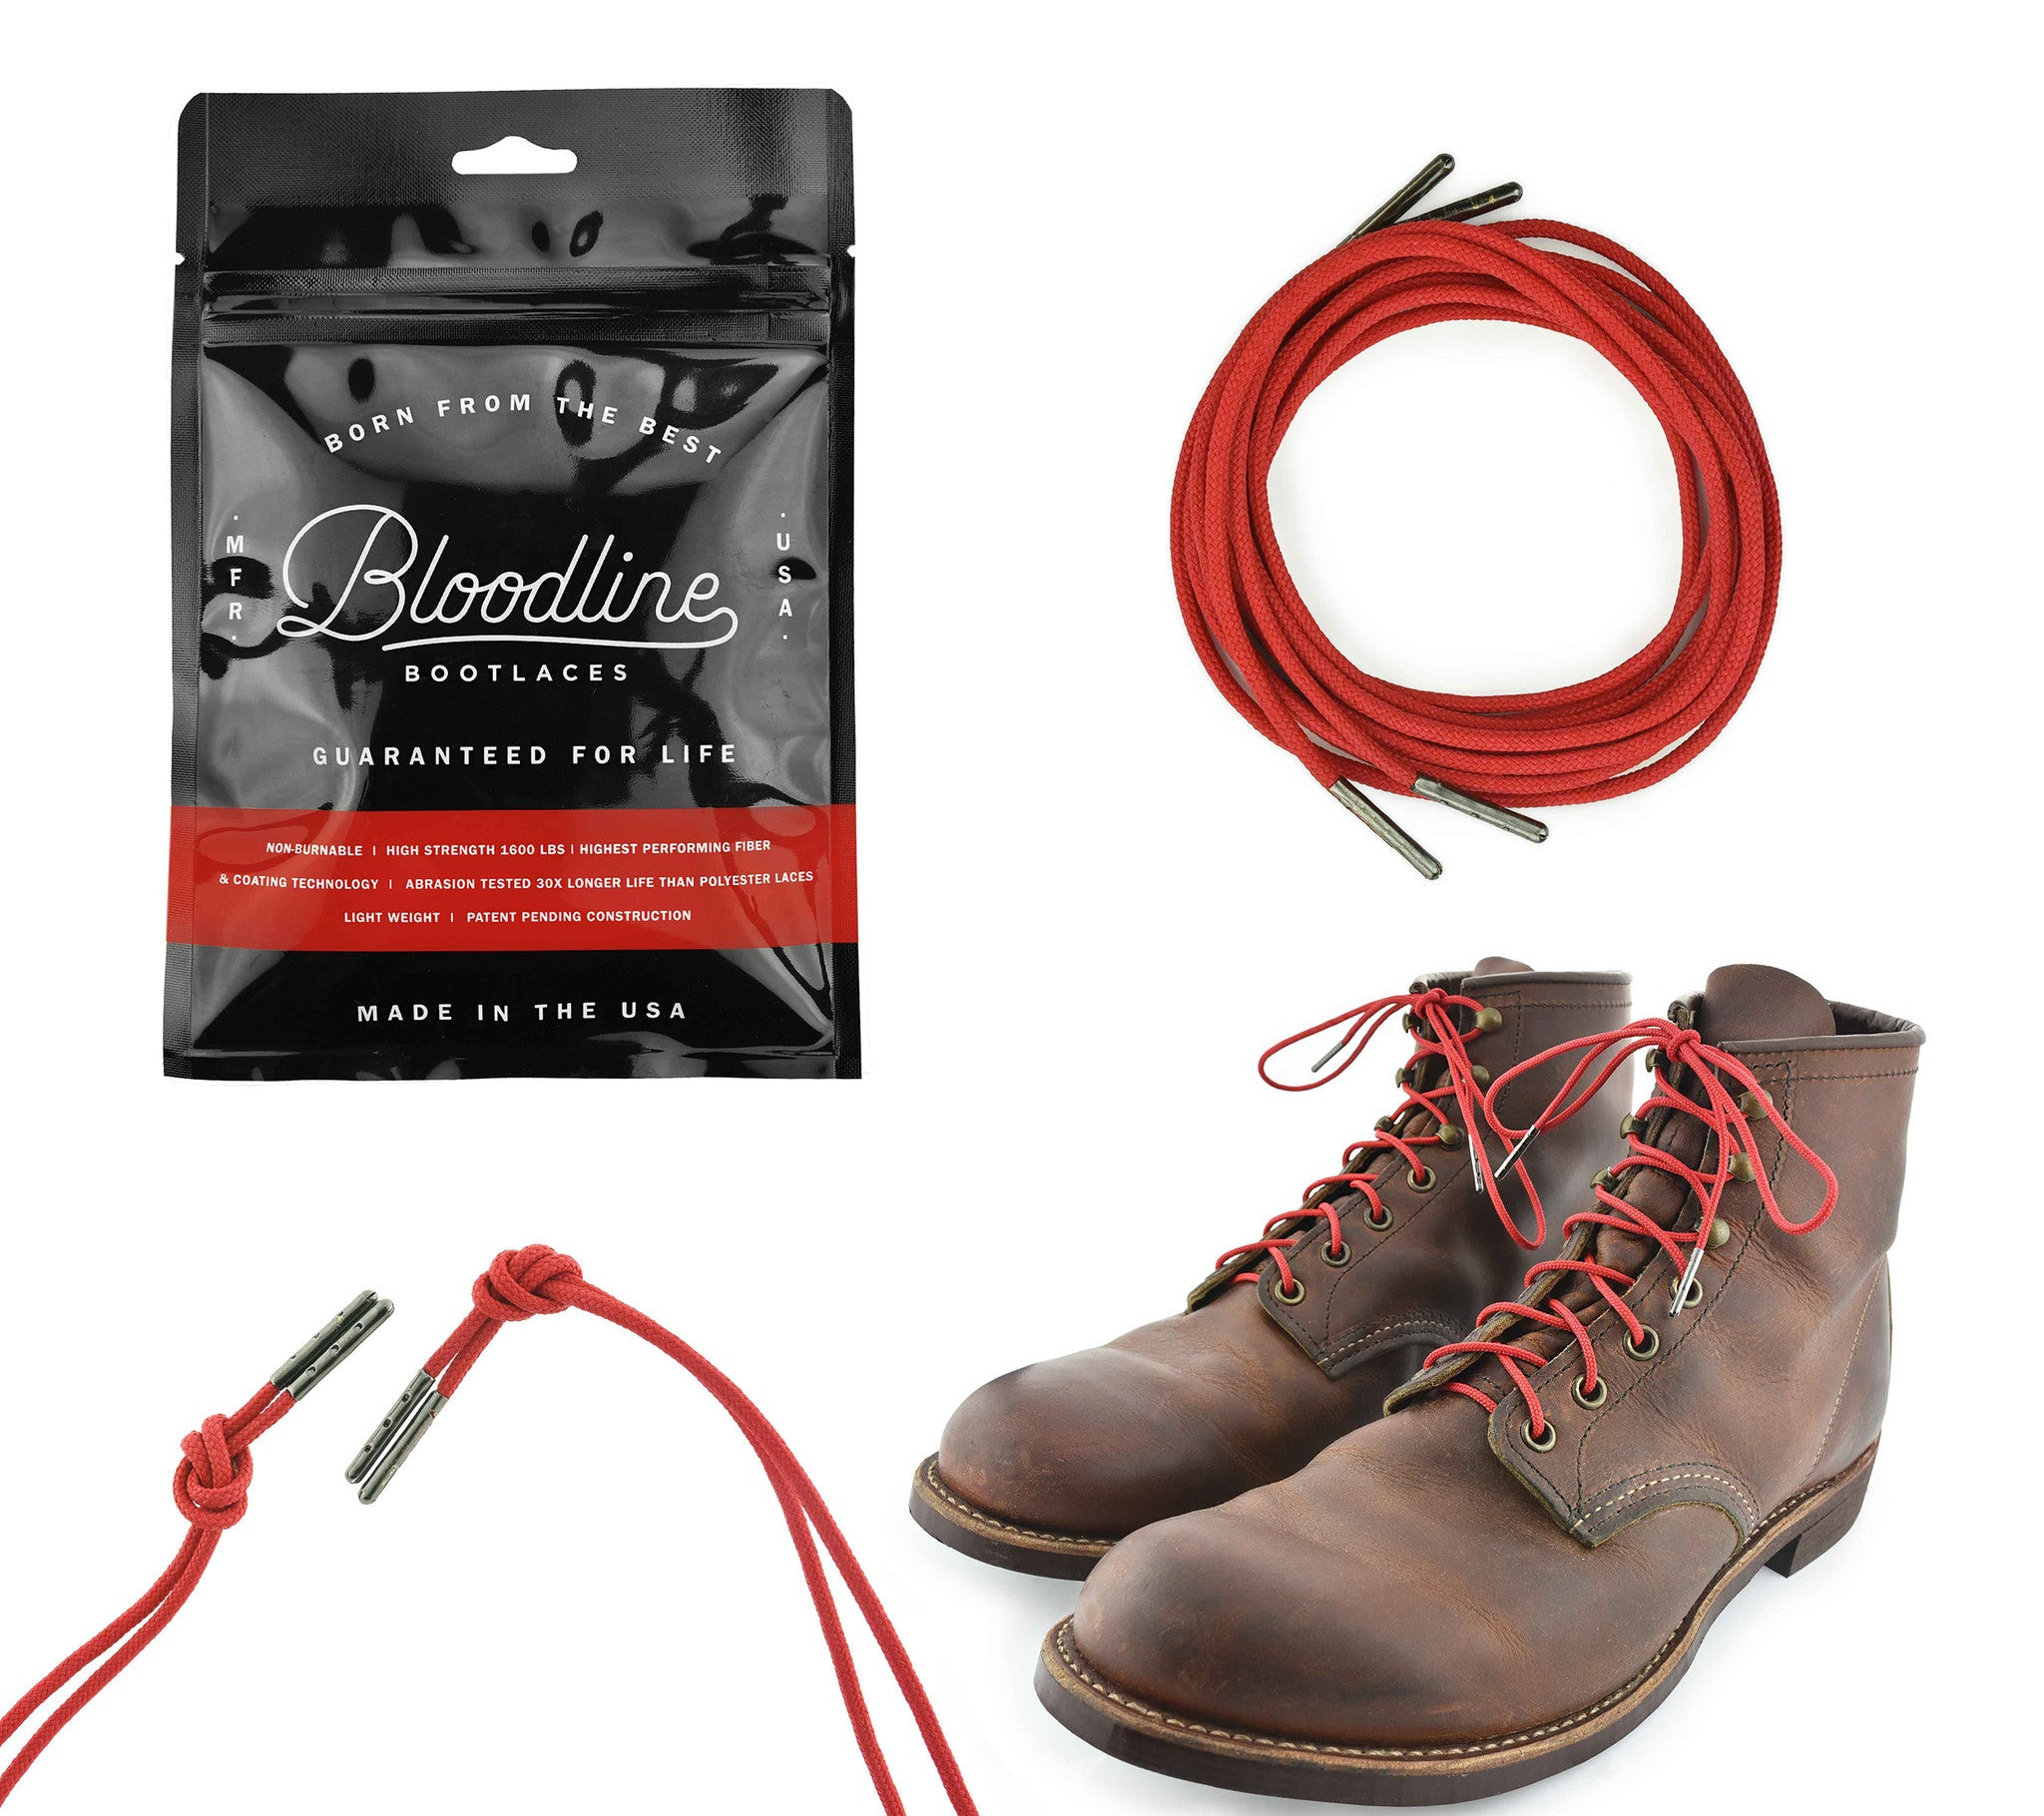 Bloodline Bootlaces | Bootlaces